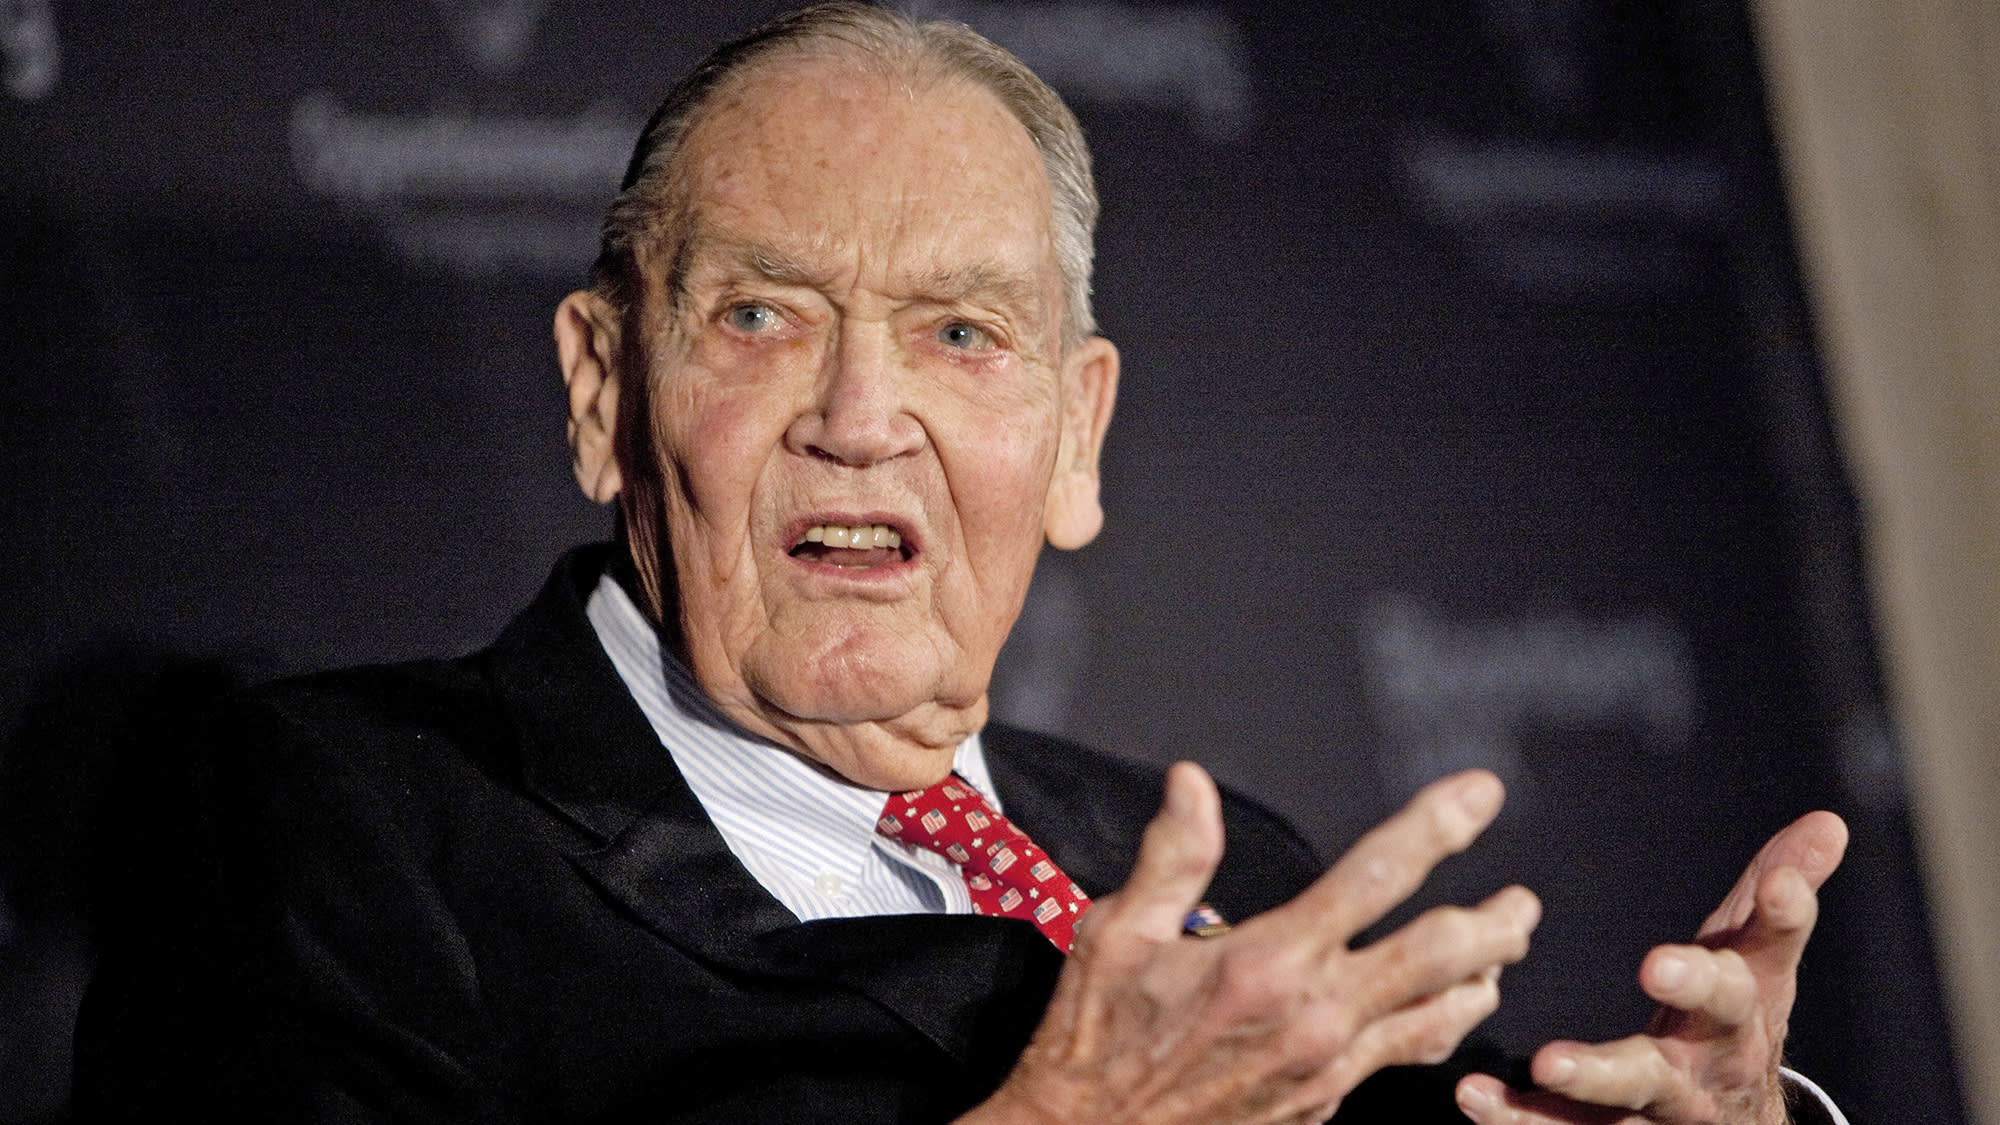 Wall Street reacts to the death of investing legend Jack Bogle